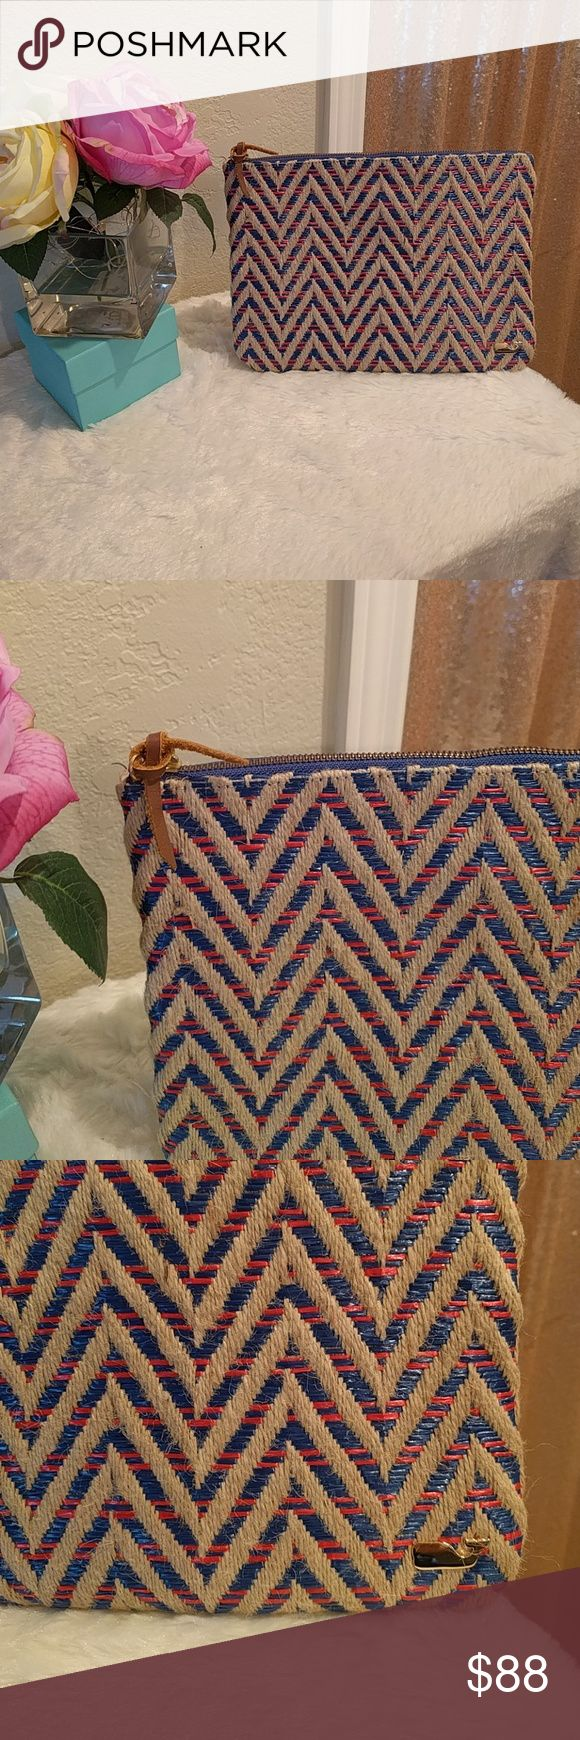 """Vineyard Vines Women's Chevron Straw Clutch Details:  •Red and blue woven through purse •Zip closure  (Small blue mark above pictured)  •Gold whale on the lower right side •Exposed gold zipper •60% linen /pp straws Lining: 100% polyester  •11"""" x 8"""" •Interior zipper zipper •Made in China •Never used Vineyard Vines Bags"""